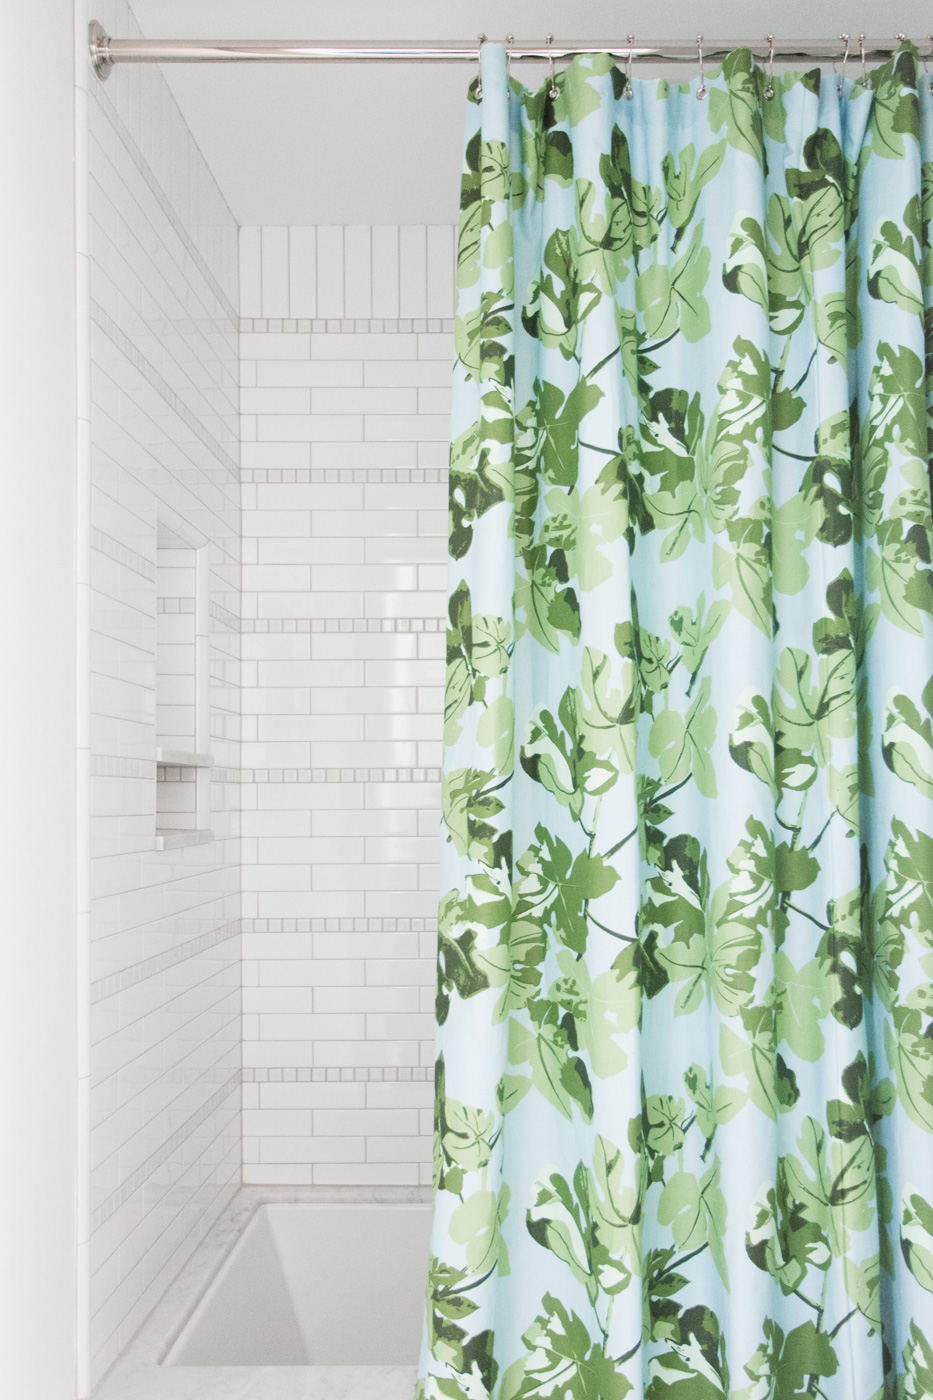 Patterned shower curtain and striped tile detail || Studio McGee